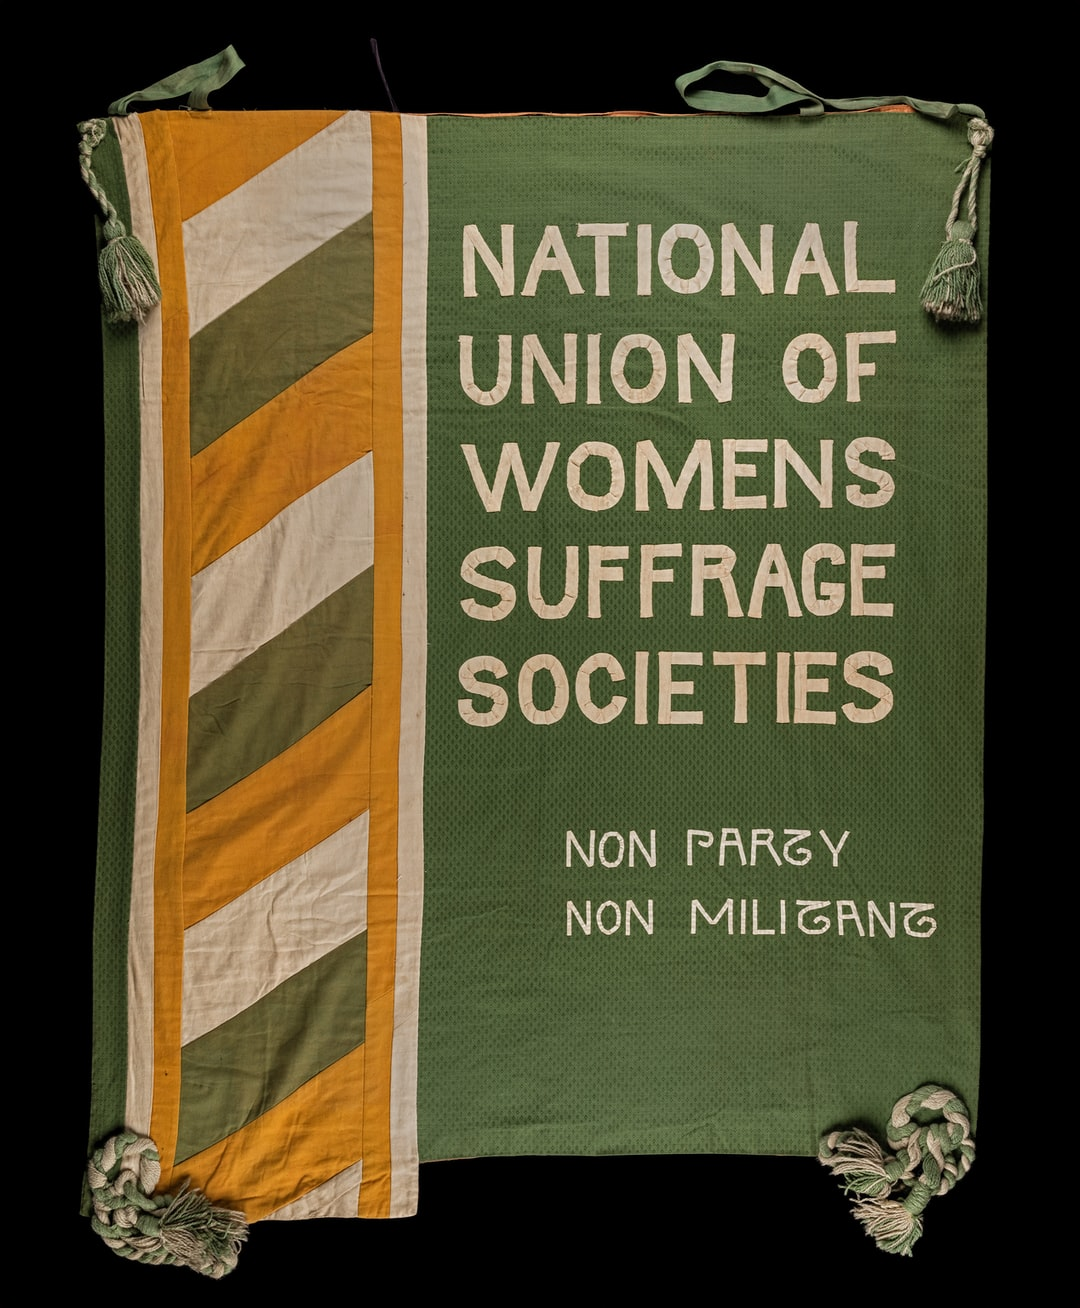 Suffrage banner, National Union of Women's Suffrage Societies. TWL.1998.02